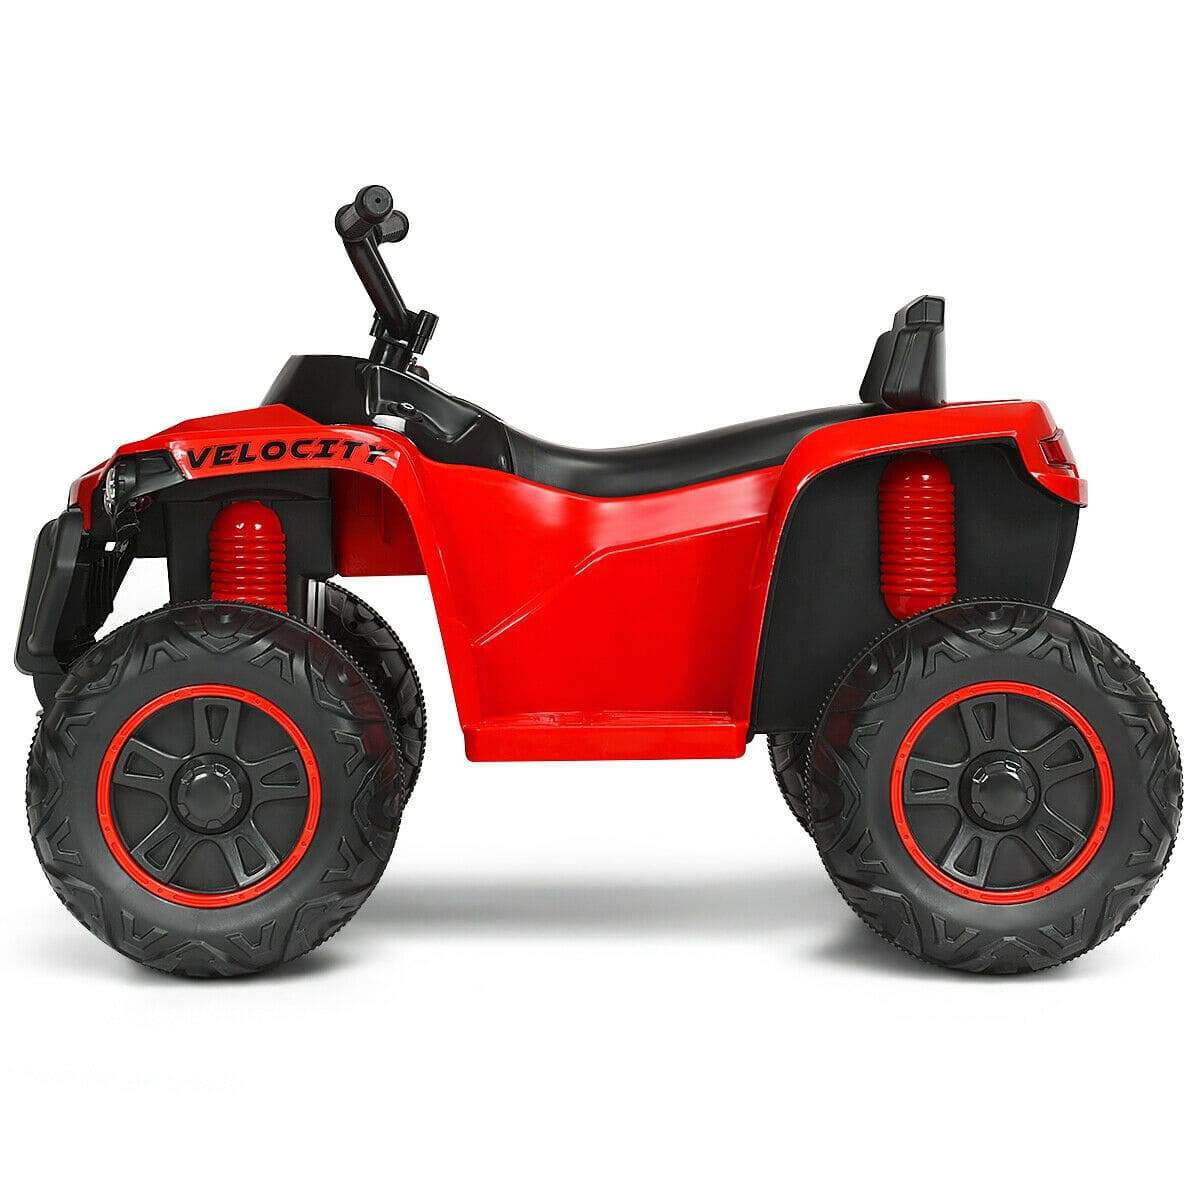 Kids 4-wheeler Quad ATV 12V Battery Powered Ride on Toy Quad Bikes & ATVs Costway